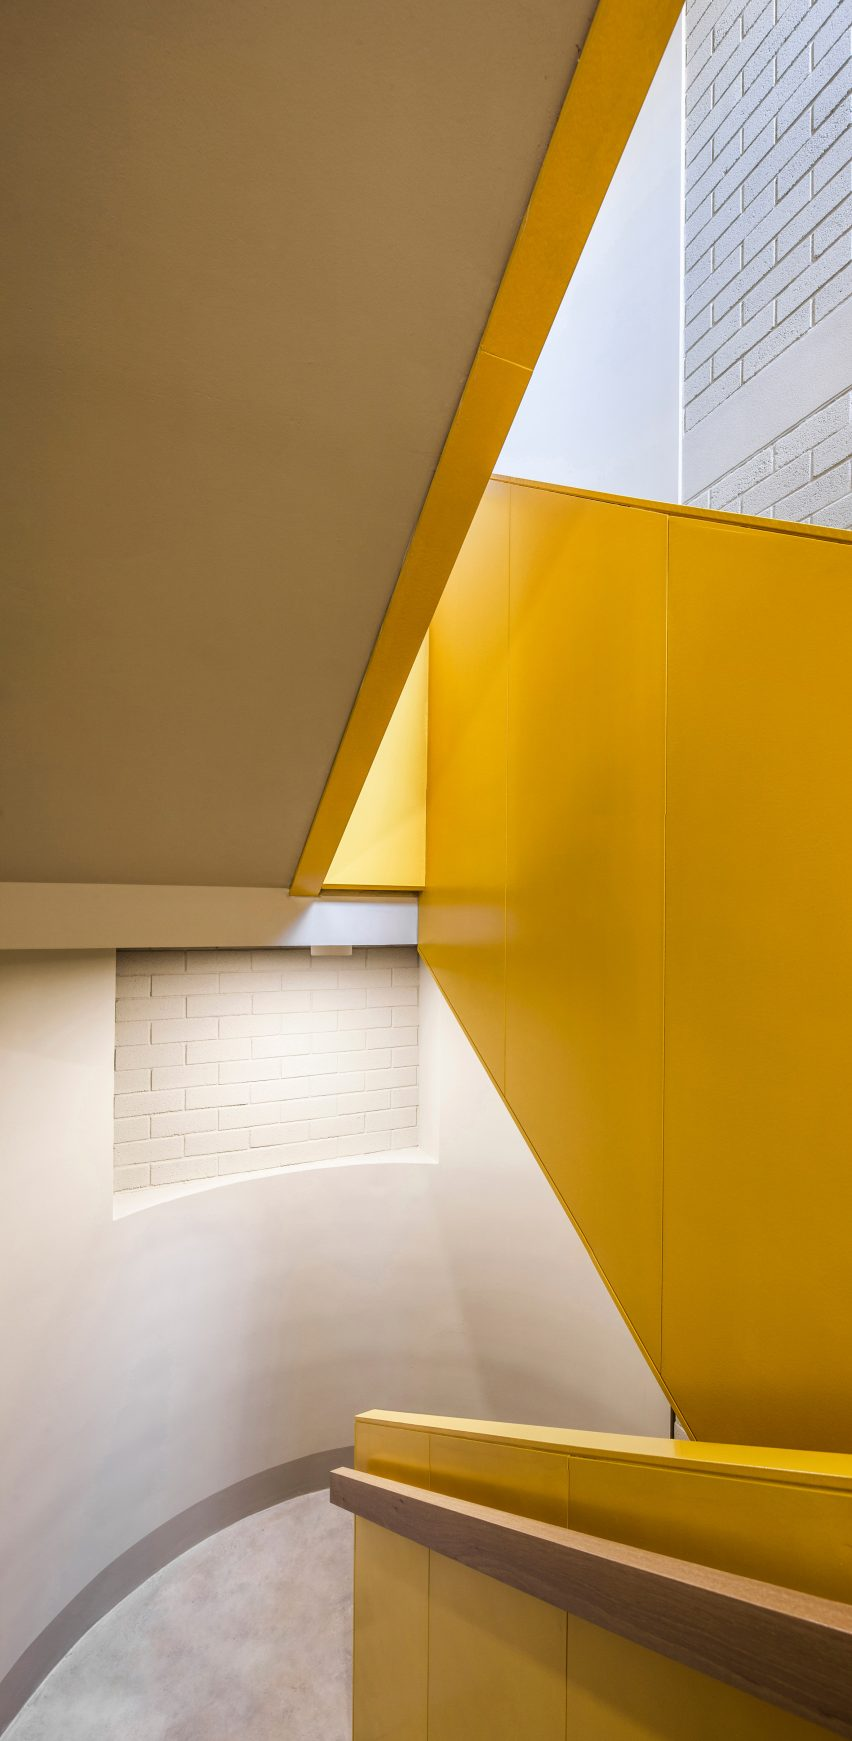 A yellow staircase contrasts against white walls